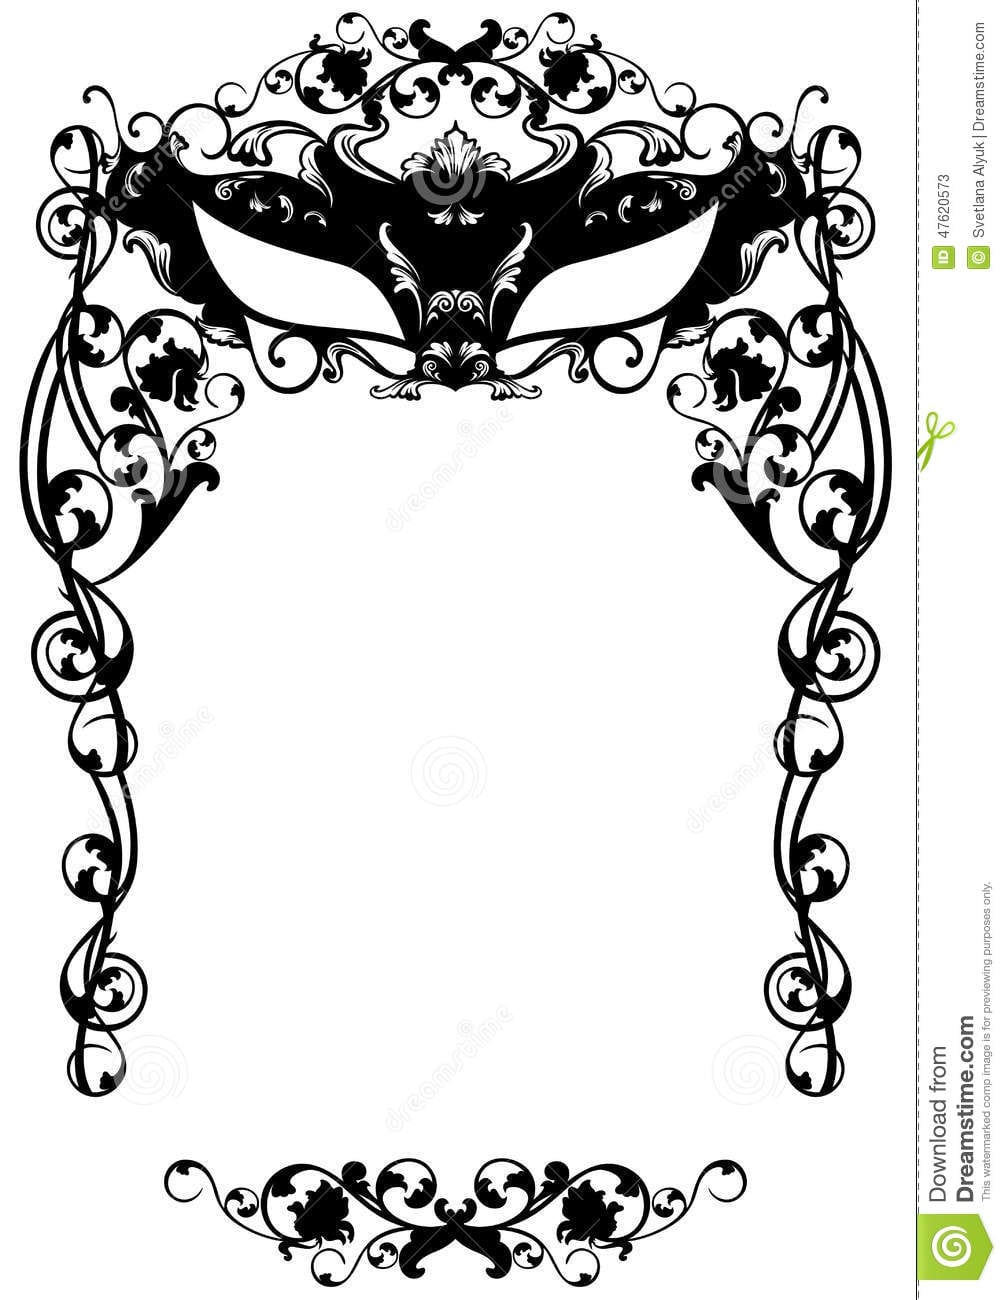 Masquerade Party Invitations - Mickey Mouse Invitations Templates